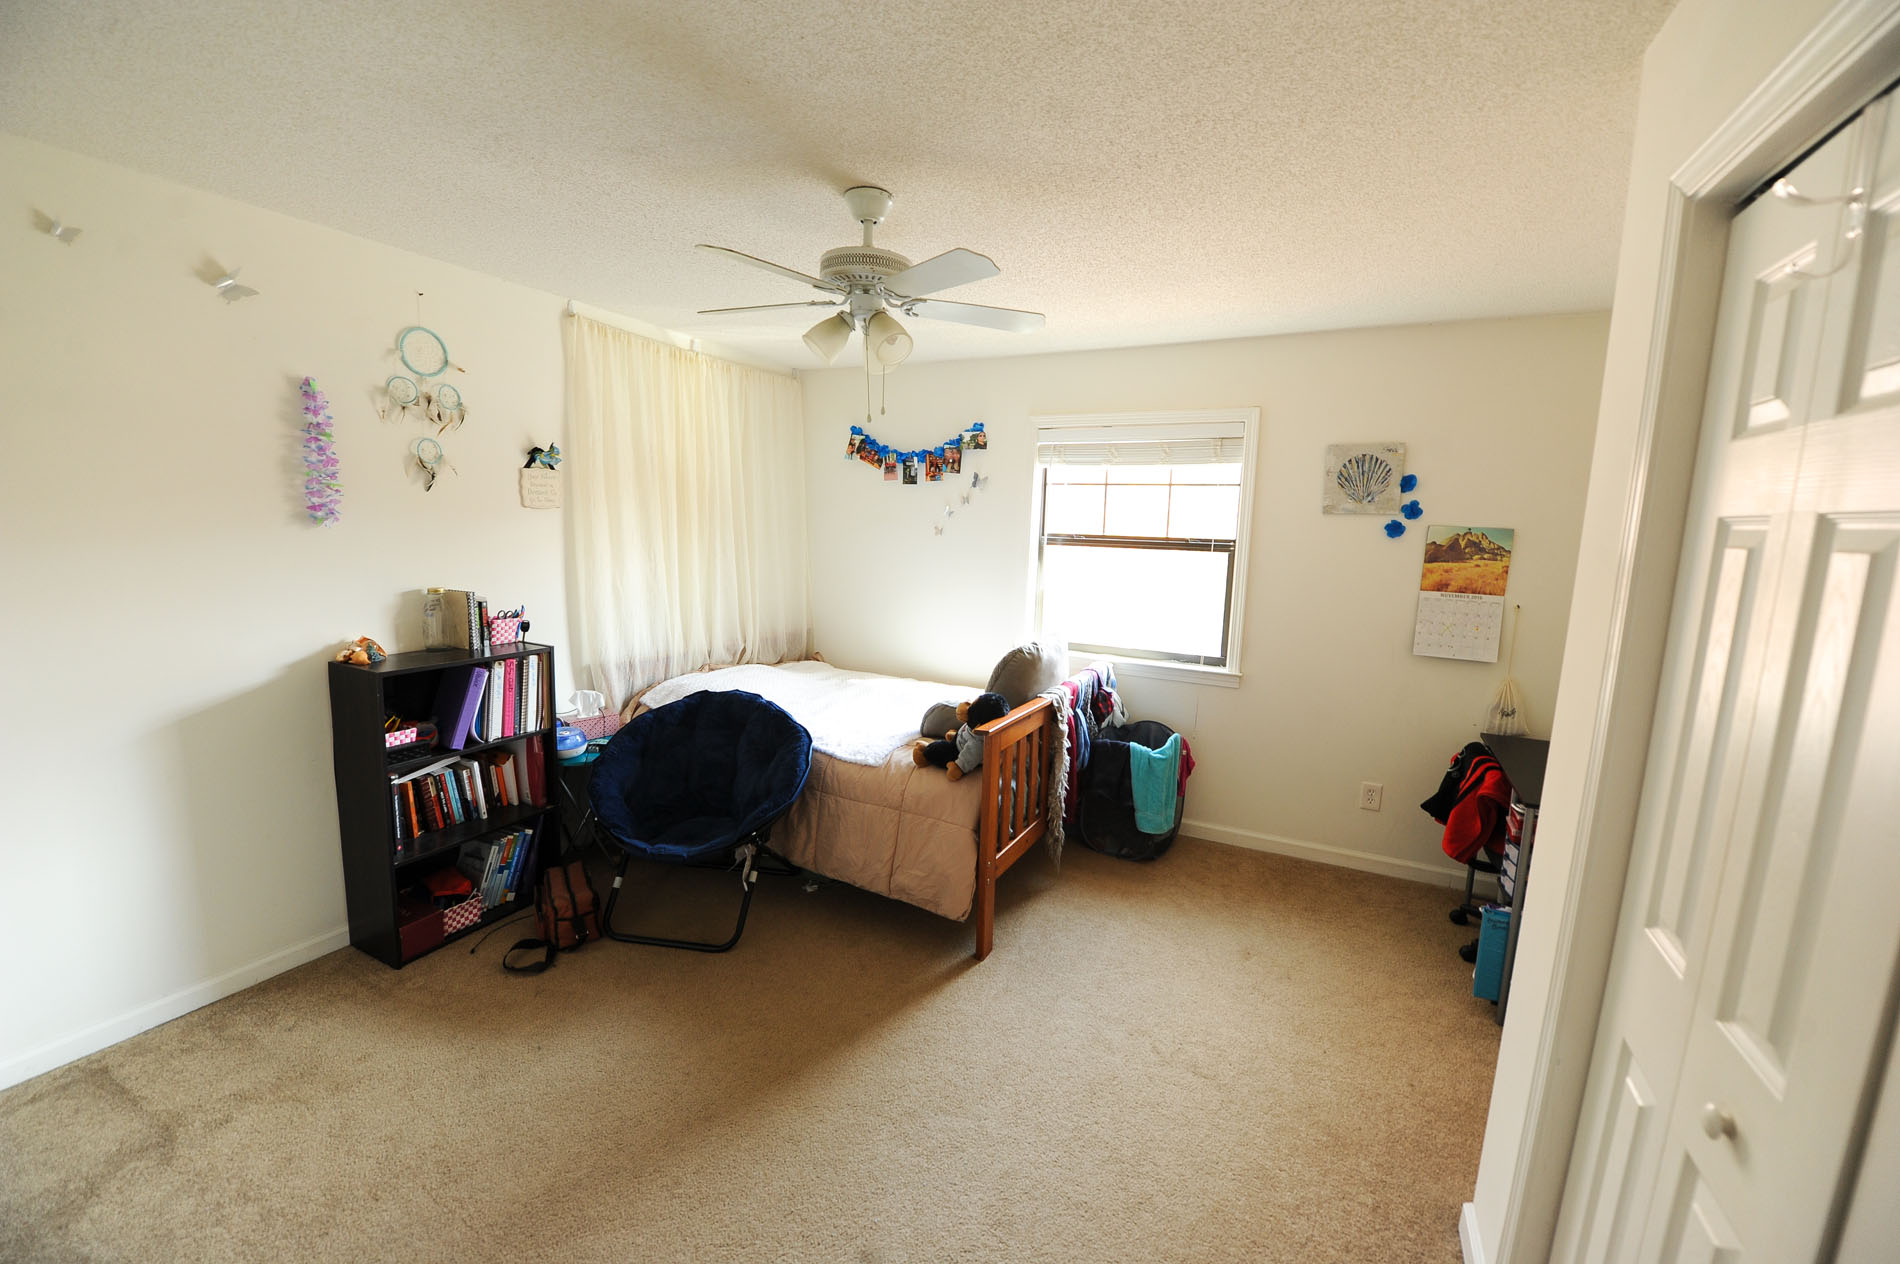 tx cheap studio in me athens lawrence daphne rent buda bedroom for one near ga al apartments